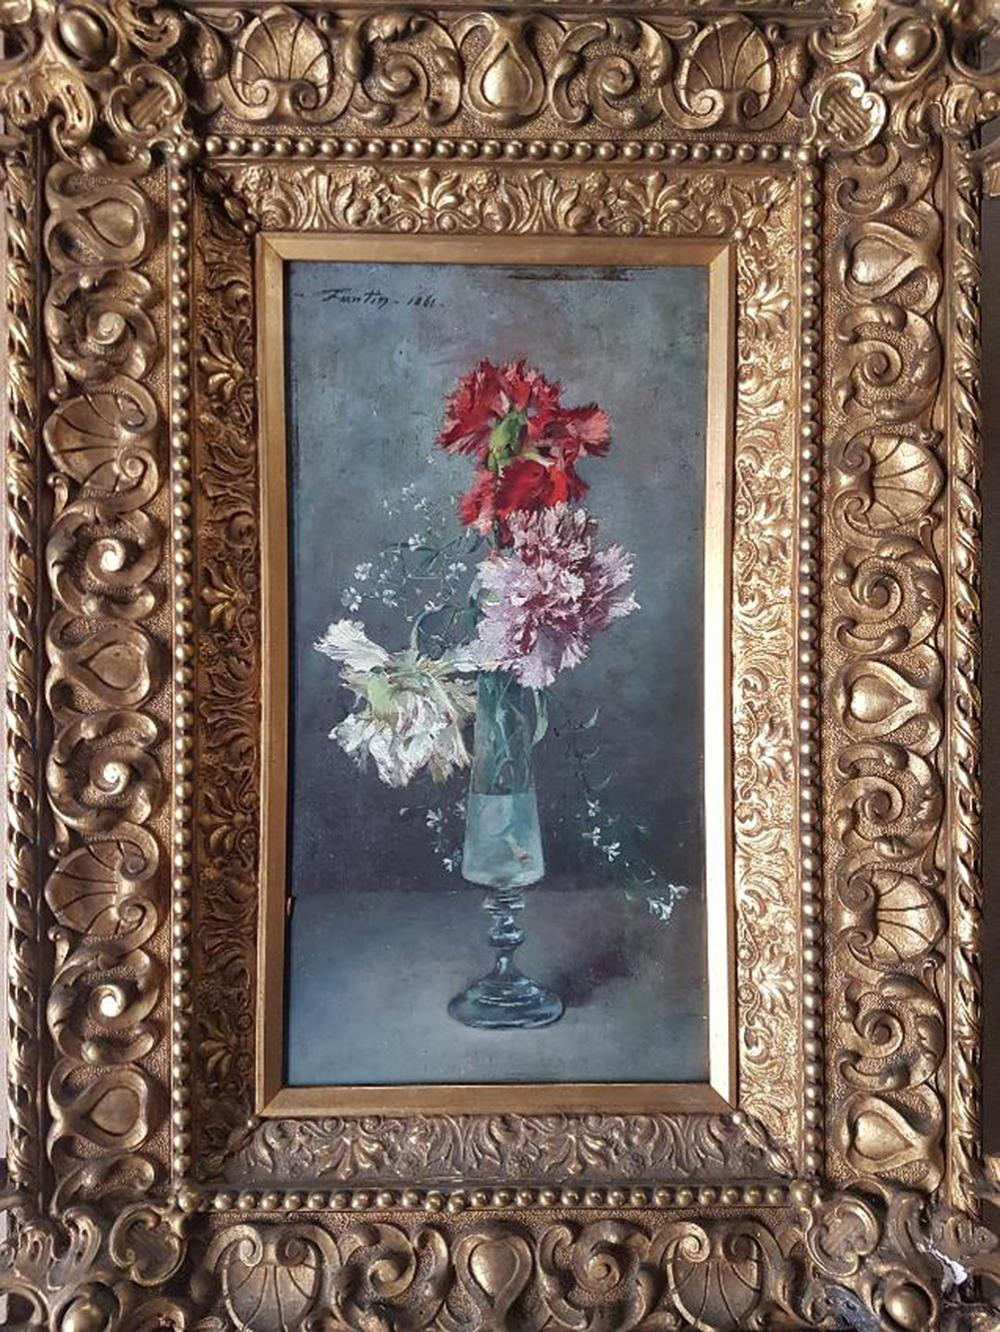 "Lot 3580: Old rare French Painting Henri Fantin-Latour, ""A Bouquet of Carnations"" 1861 Oil on Wood"